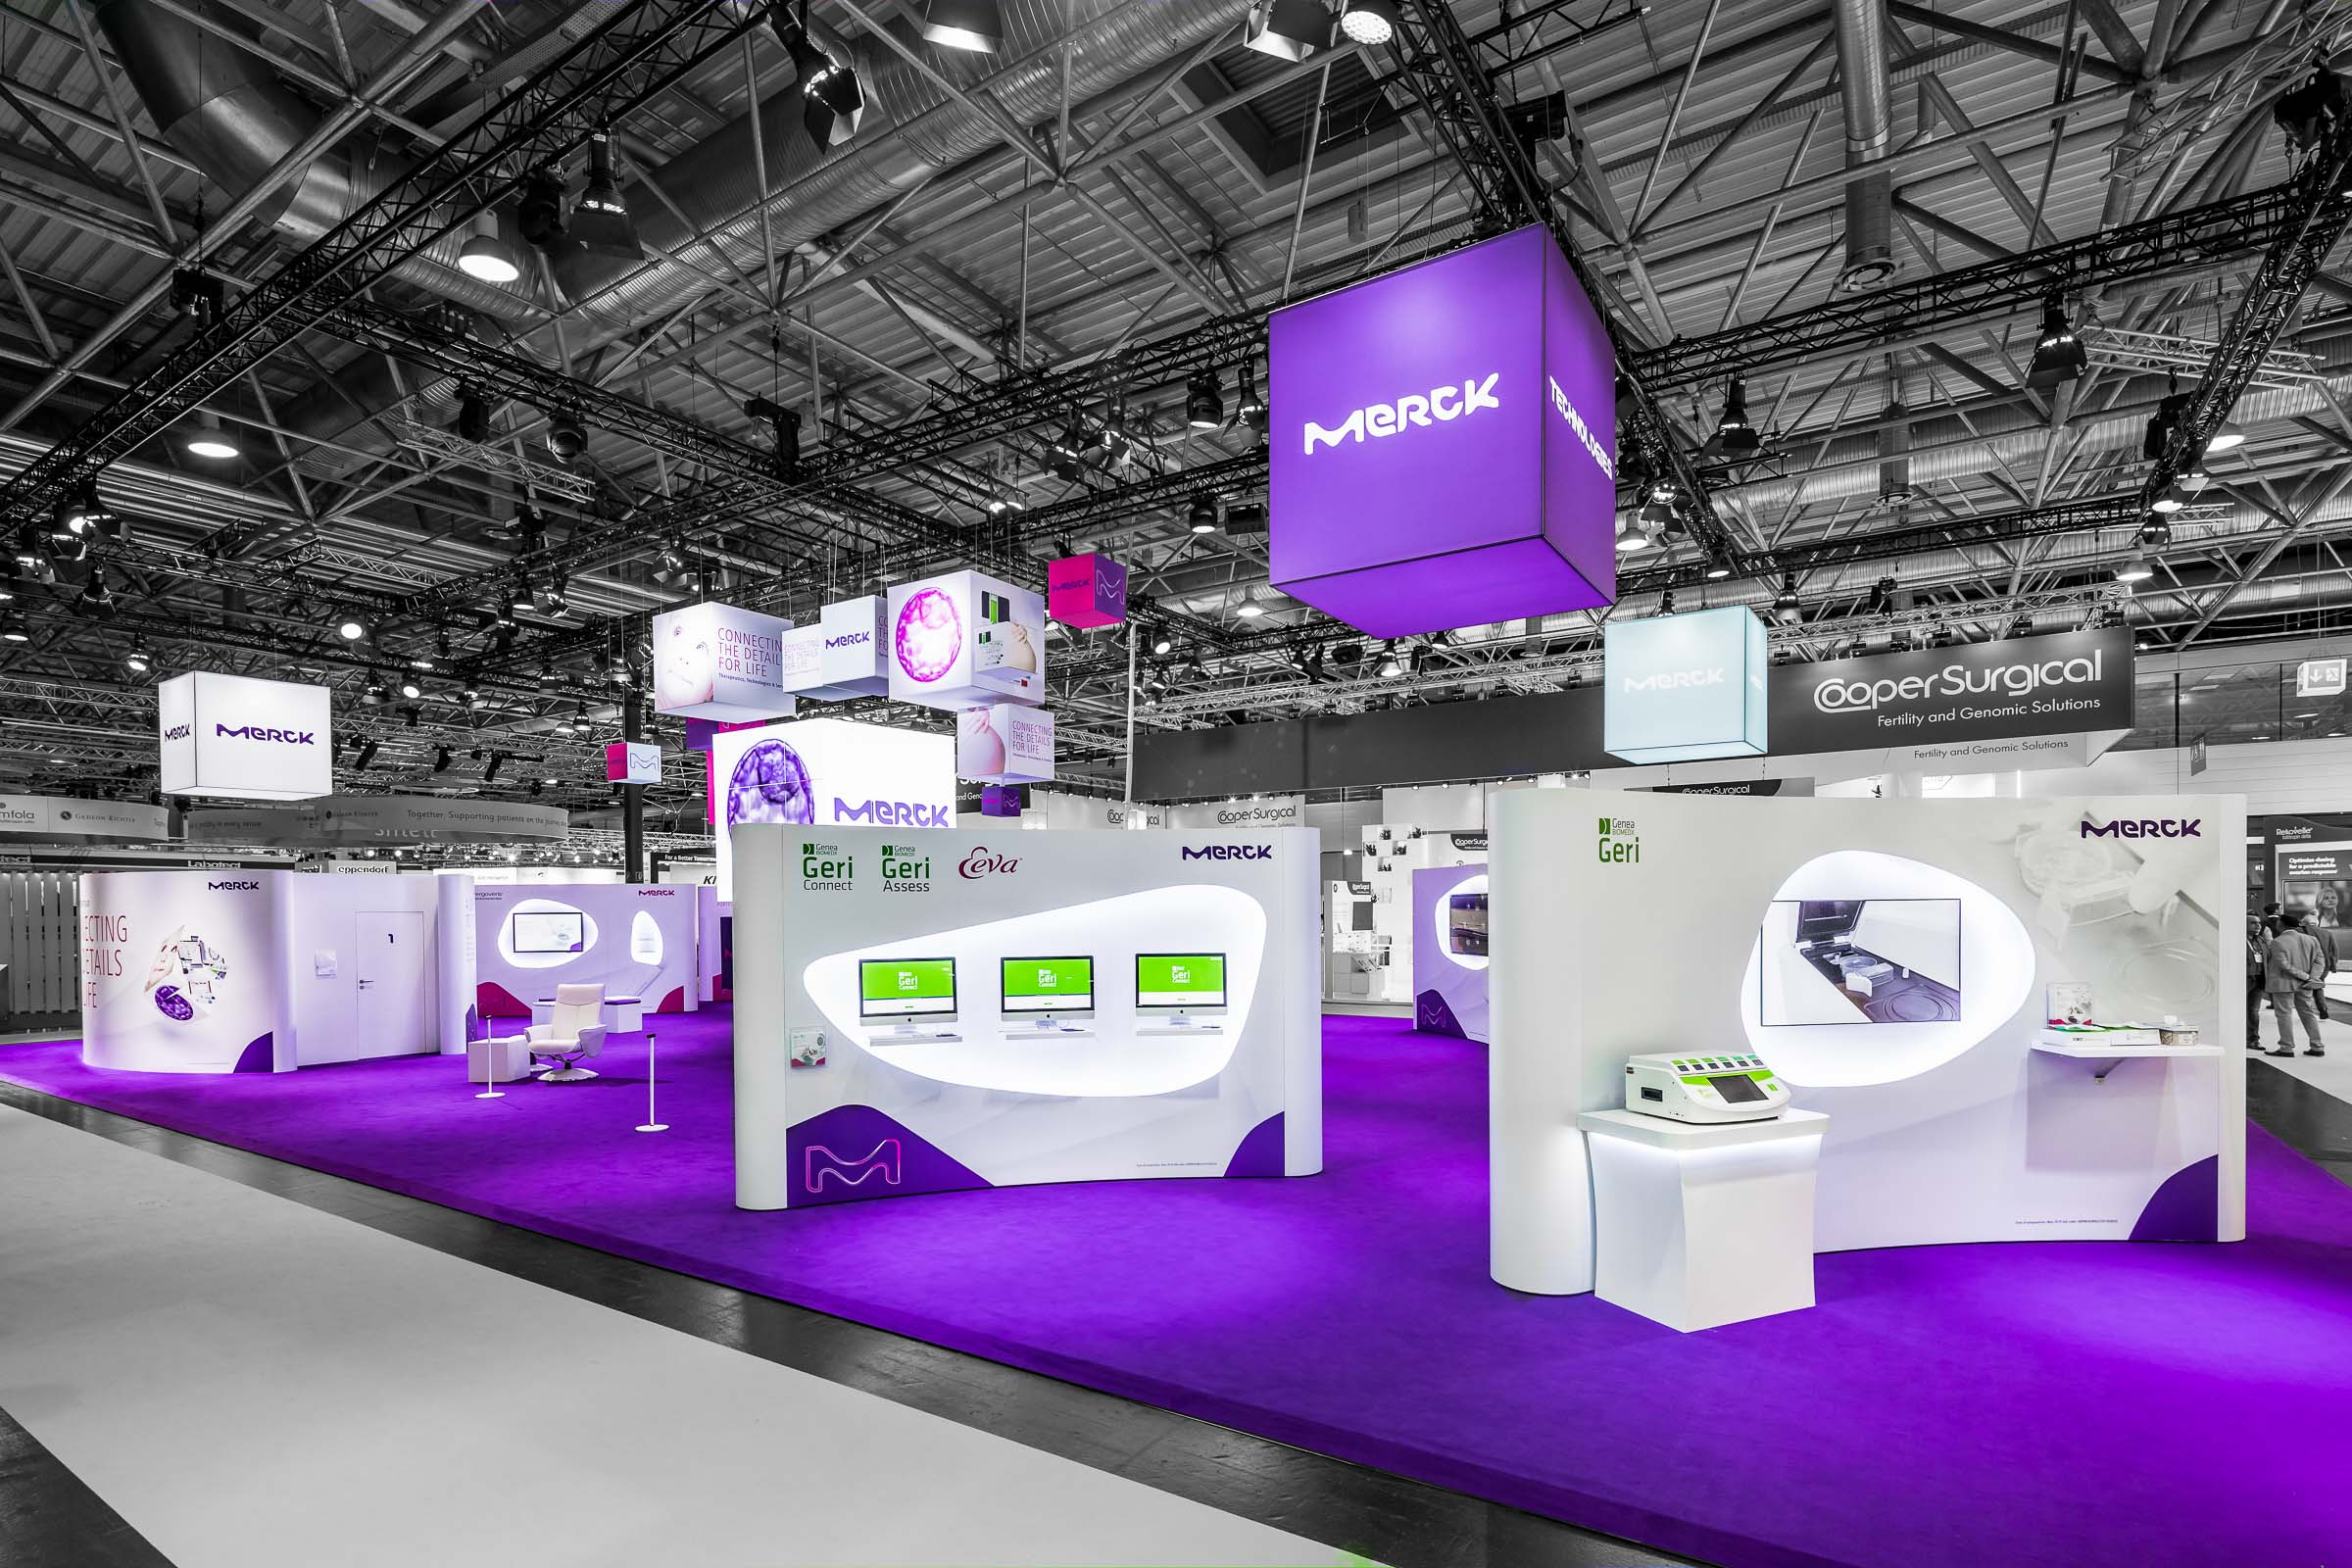 Messestand MERCK Wien Messeprojekt GmbH